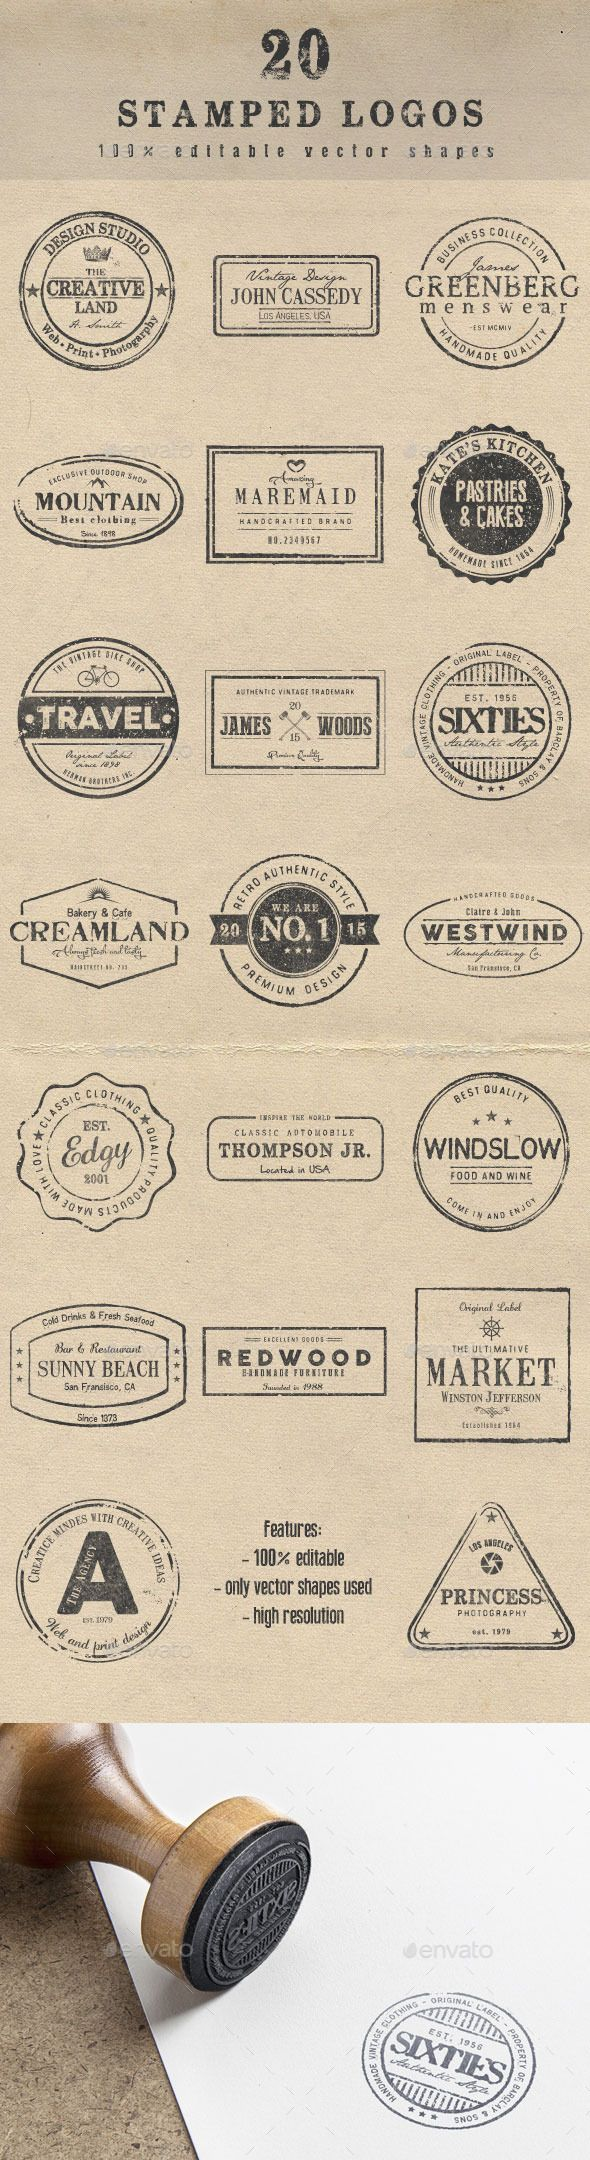 20 Stamped Logos #design Download: http://graphicriver.net/item/20-stamped-logos/12113658?ref=ksioks